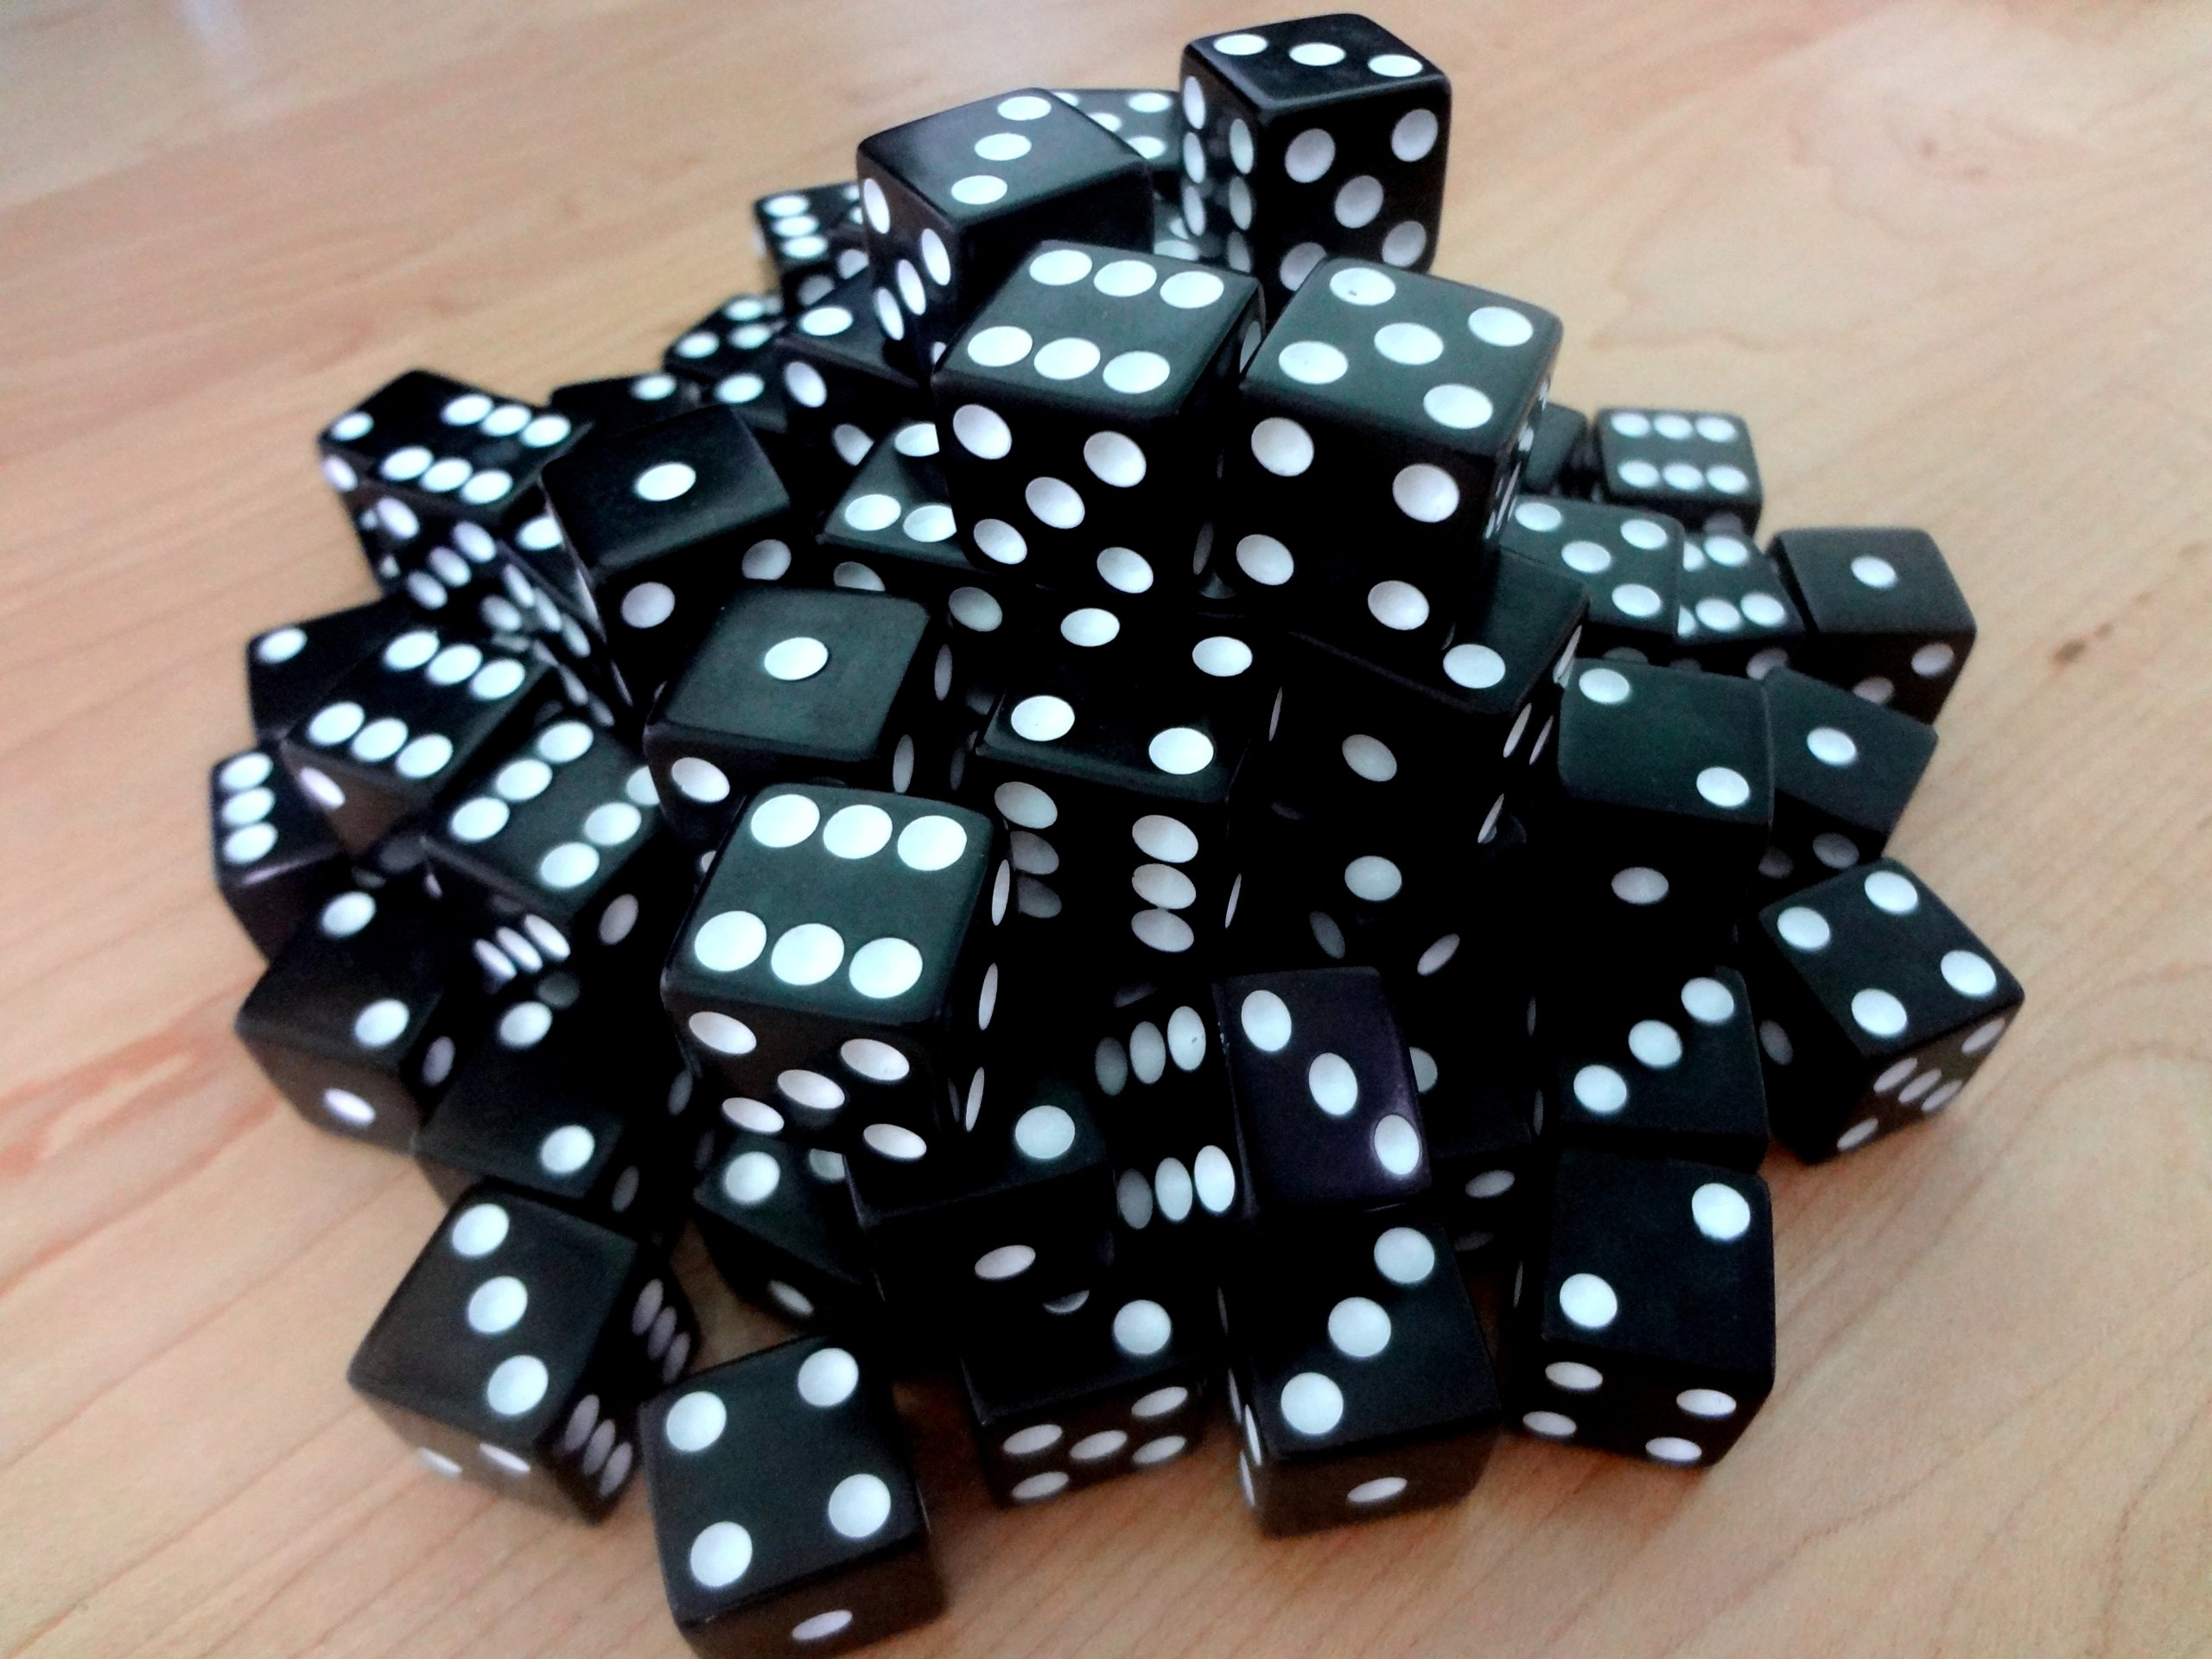 Discount Learning Supplies 100 Black Dice - 16Mm by Discount Learning Supplies